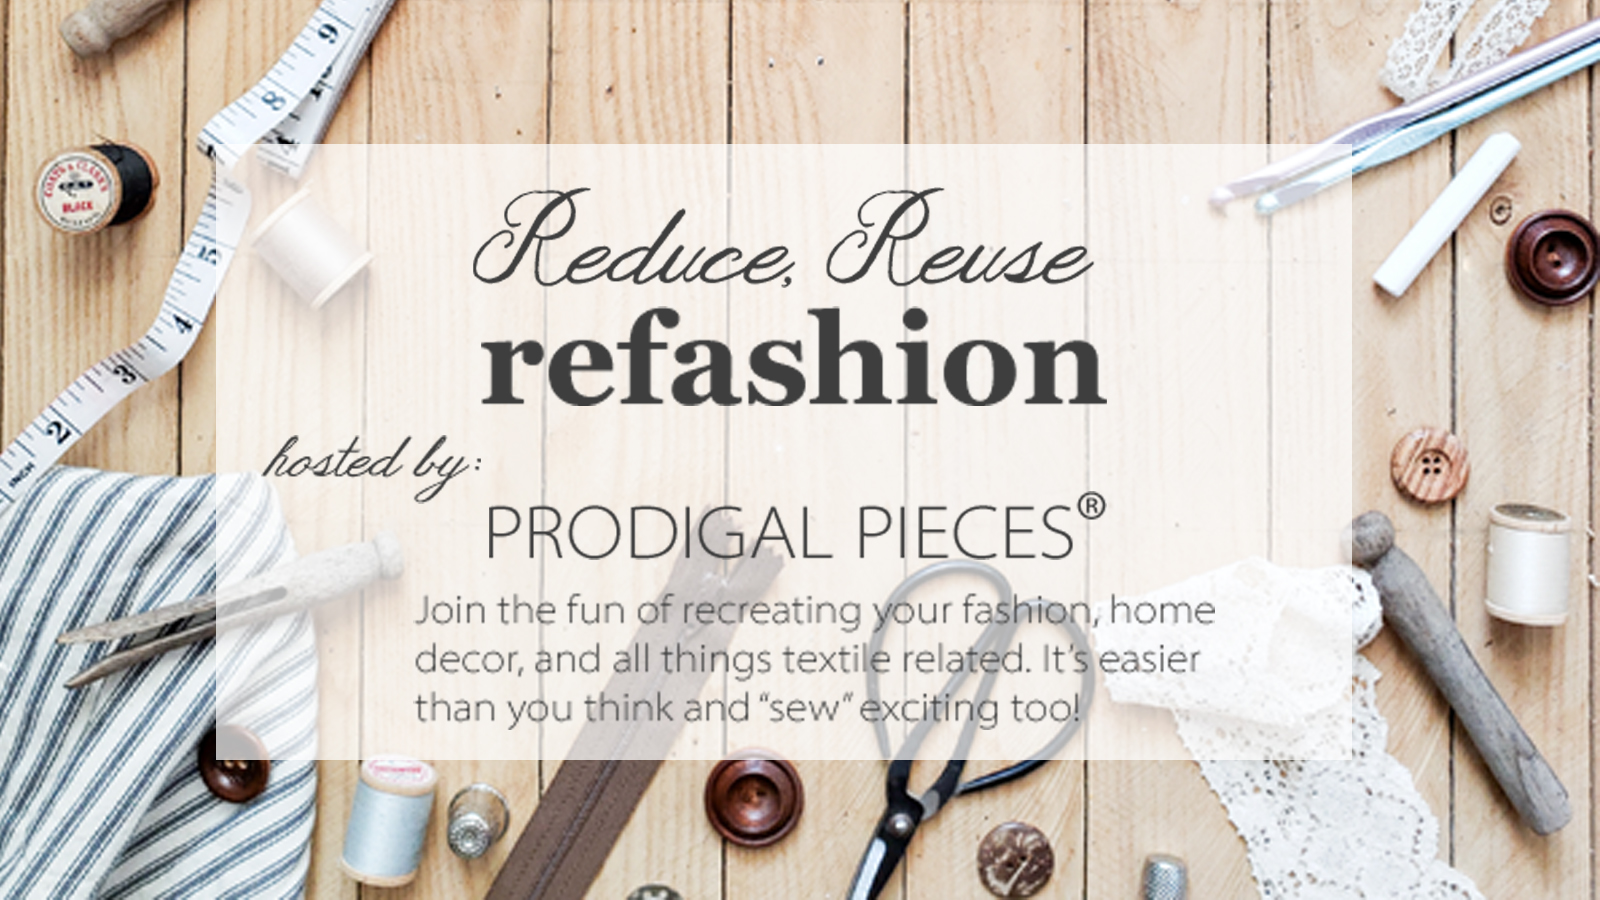 Reduce, Reuse, REFASHION series hosted by Larissa of Prodigal Pieces | Come learn to create for you and your home | prodigalpieces.com #prodigalpieces